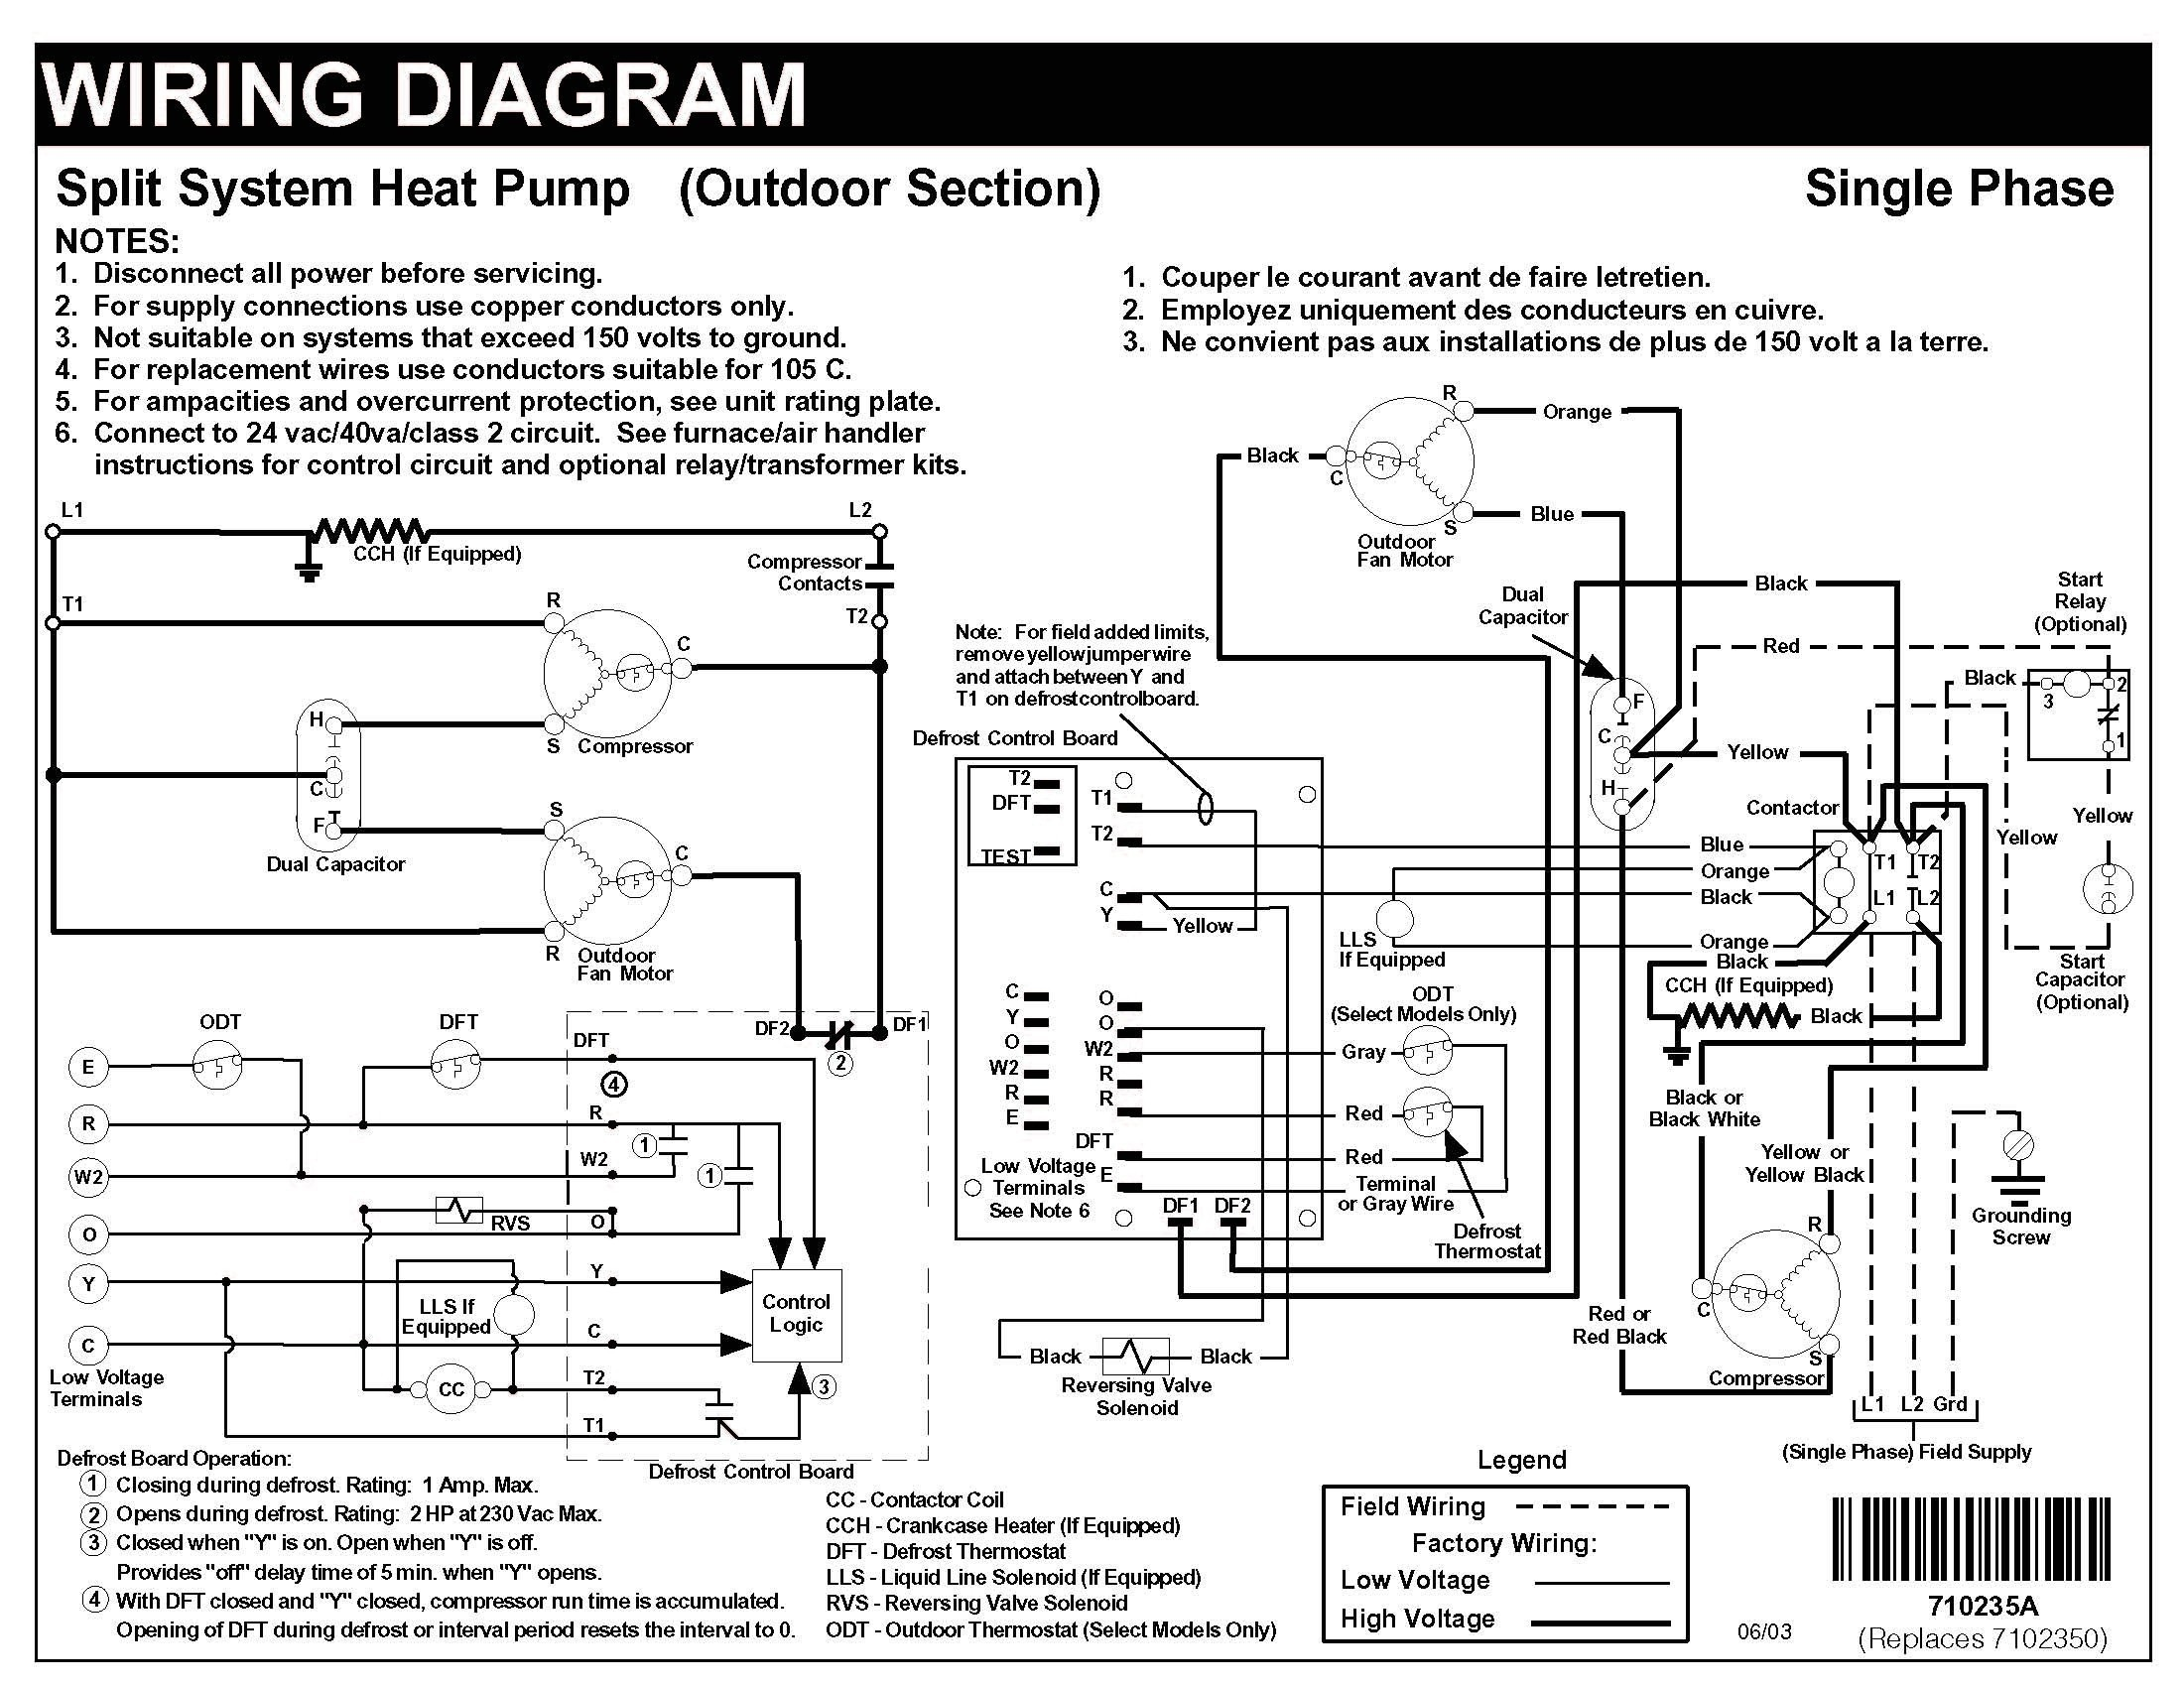 Schematic Tempstar Tempstar For Wiring Heil Nulk075dg05 - Bmw X3 Ballast  Wiring Diagrams - viking.bebenag-nian.waystar.fr | Wiring Yale Schematic Fork Lift Glp050rc |  | Wiring Diagram Resource